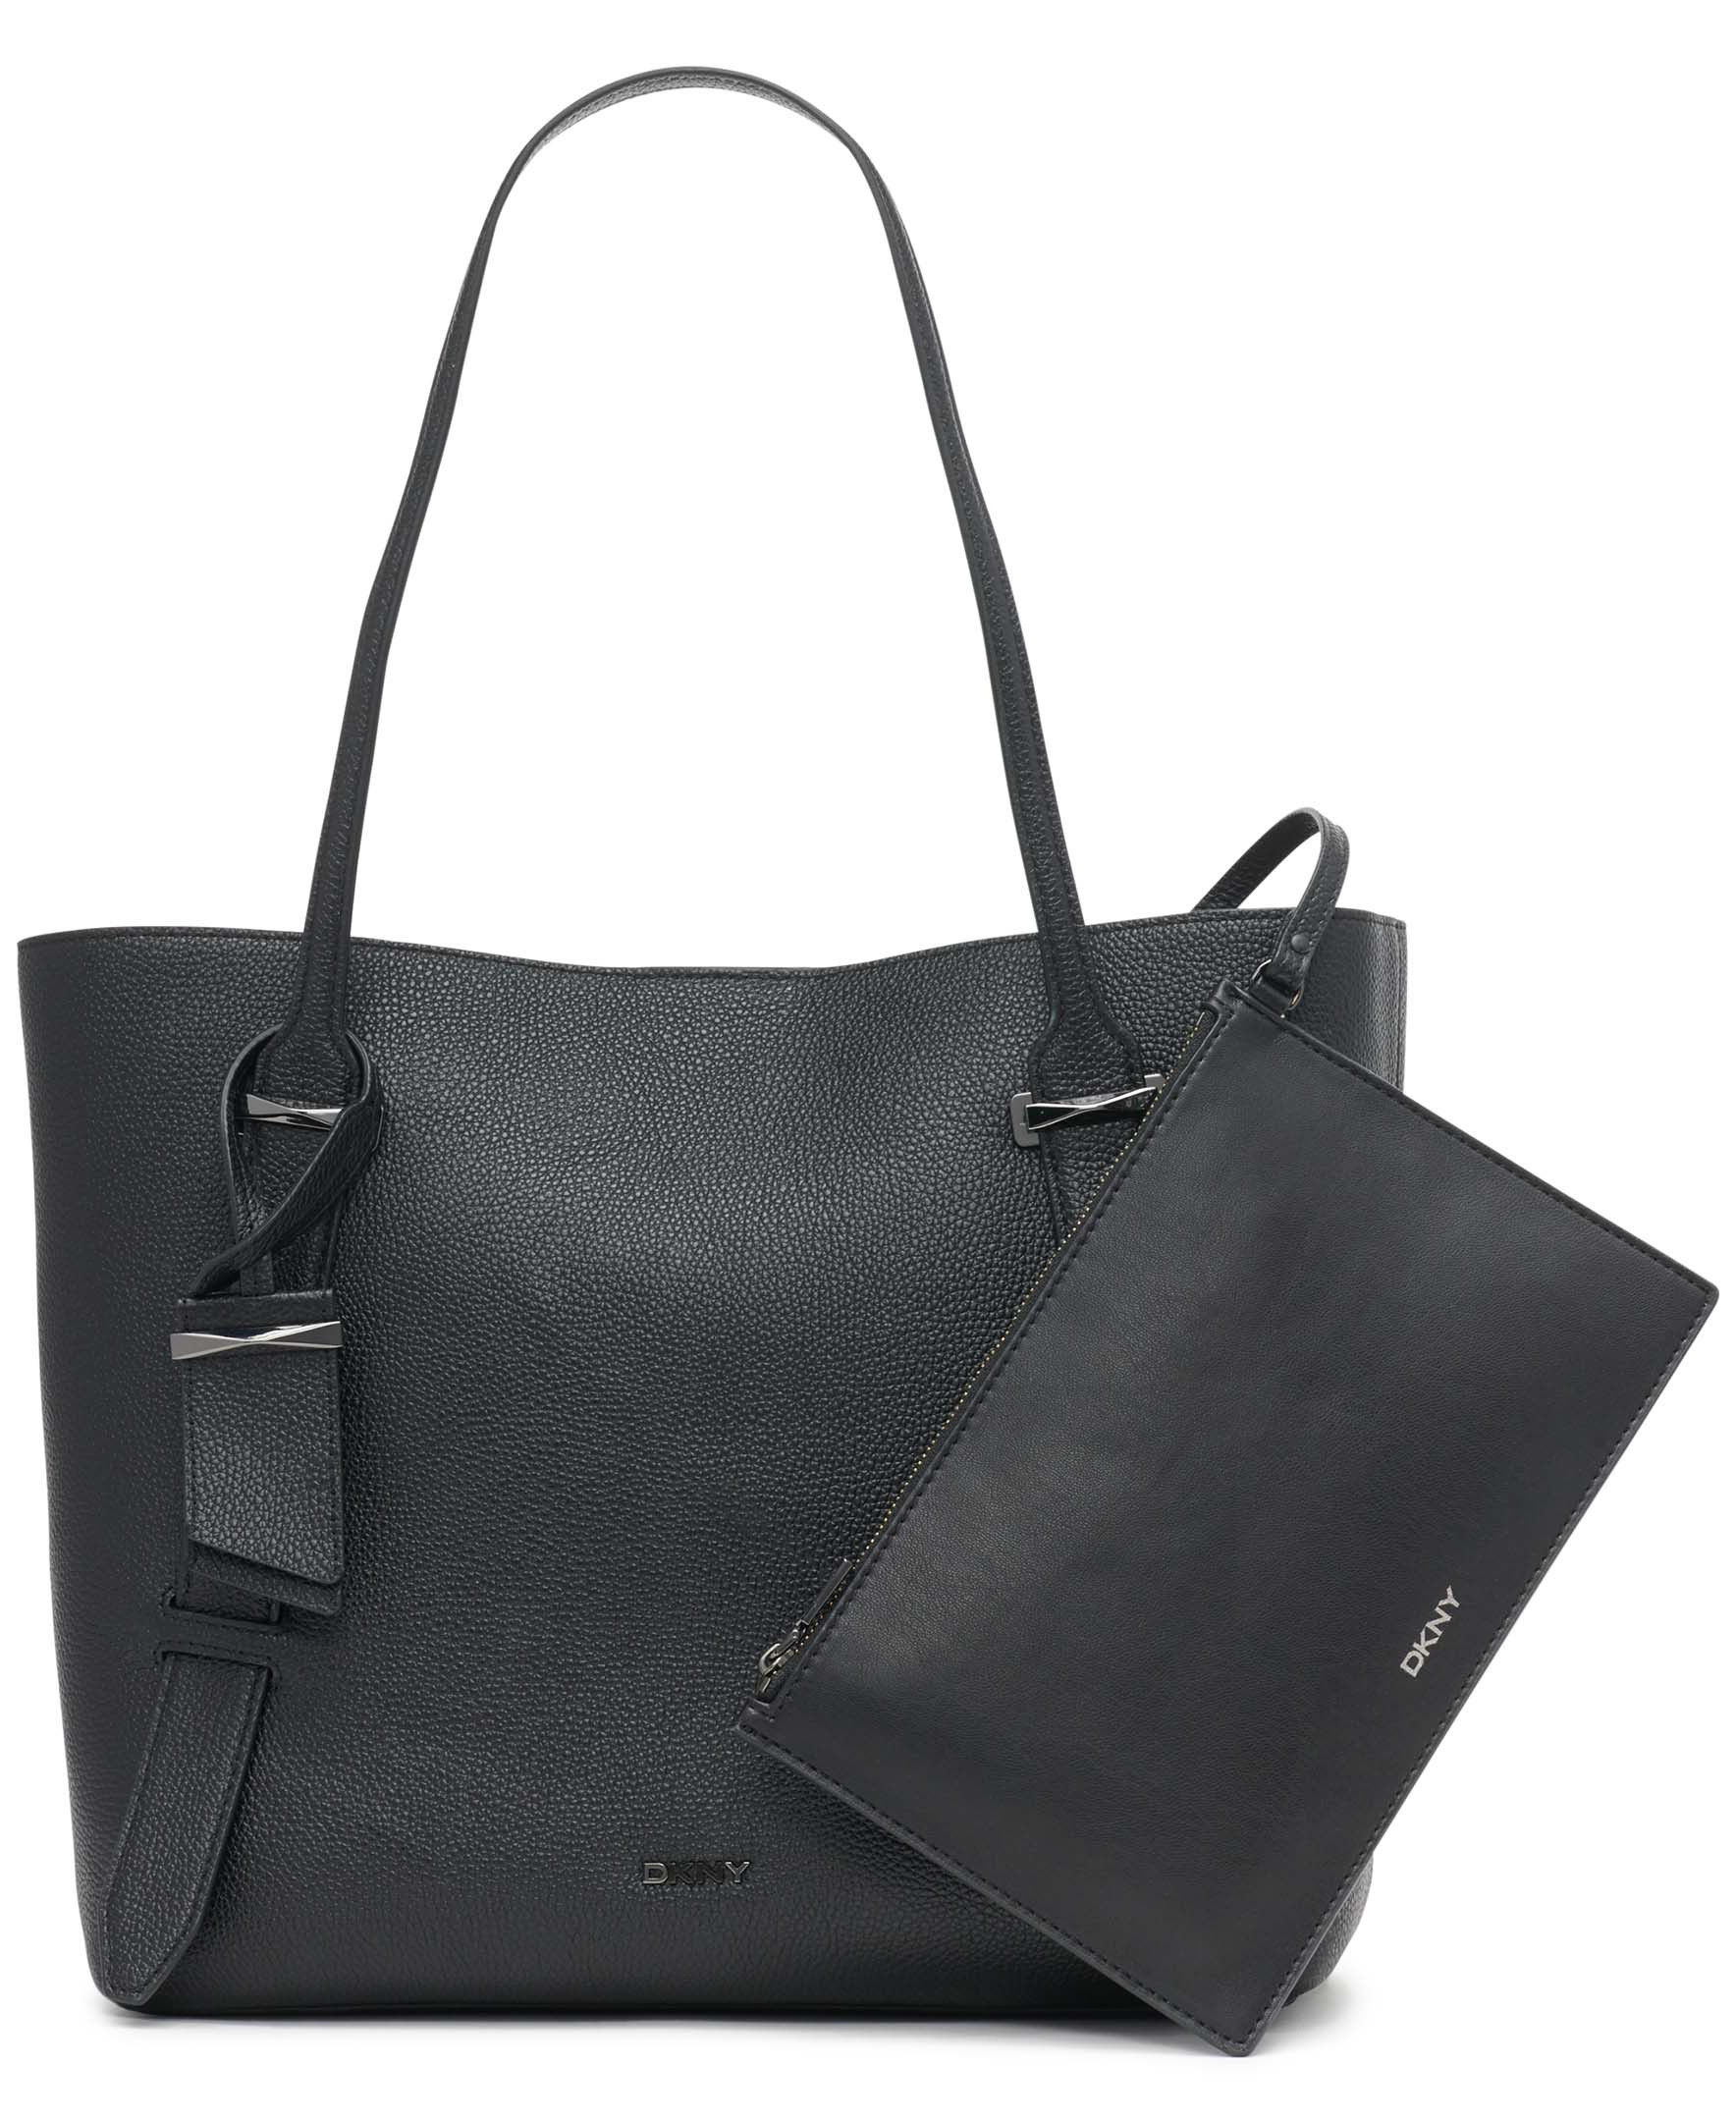 Tote bag Bailey, Nero, large image number 0